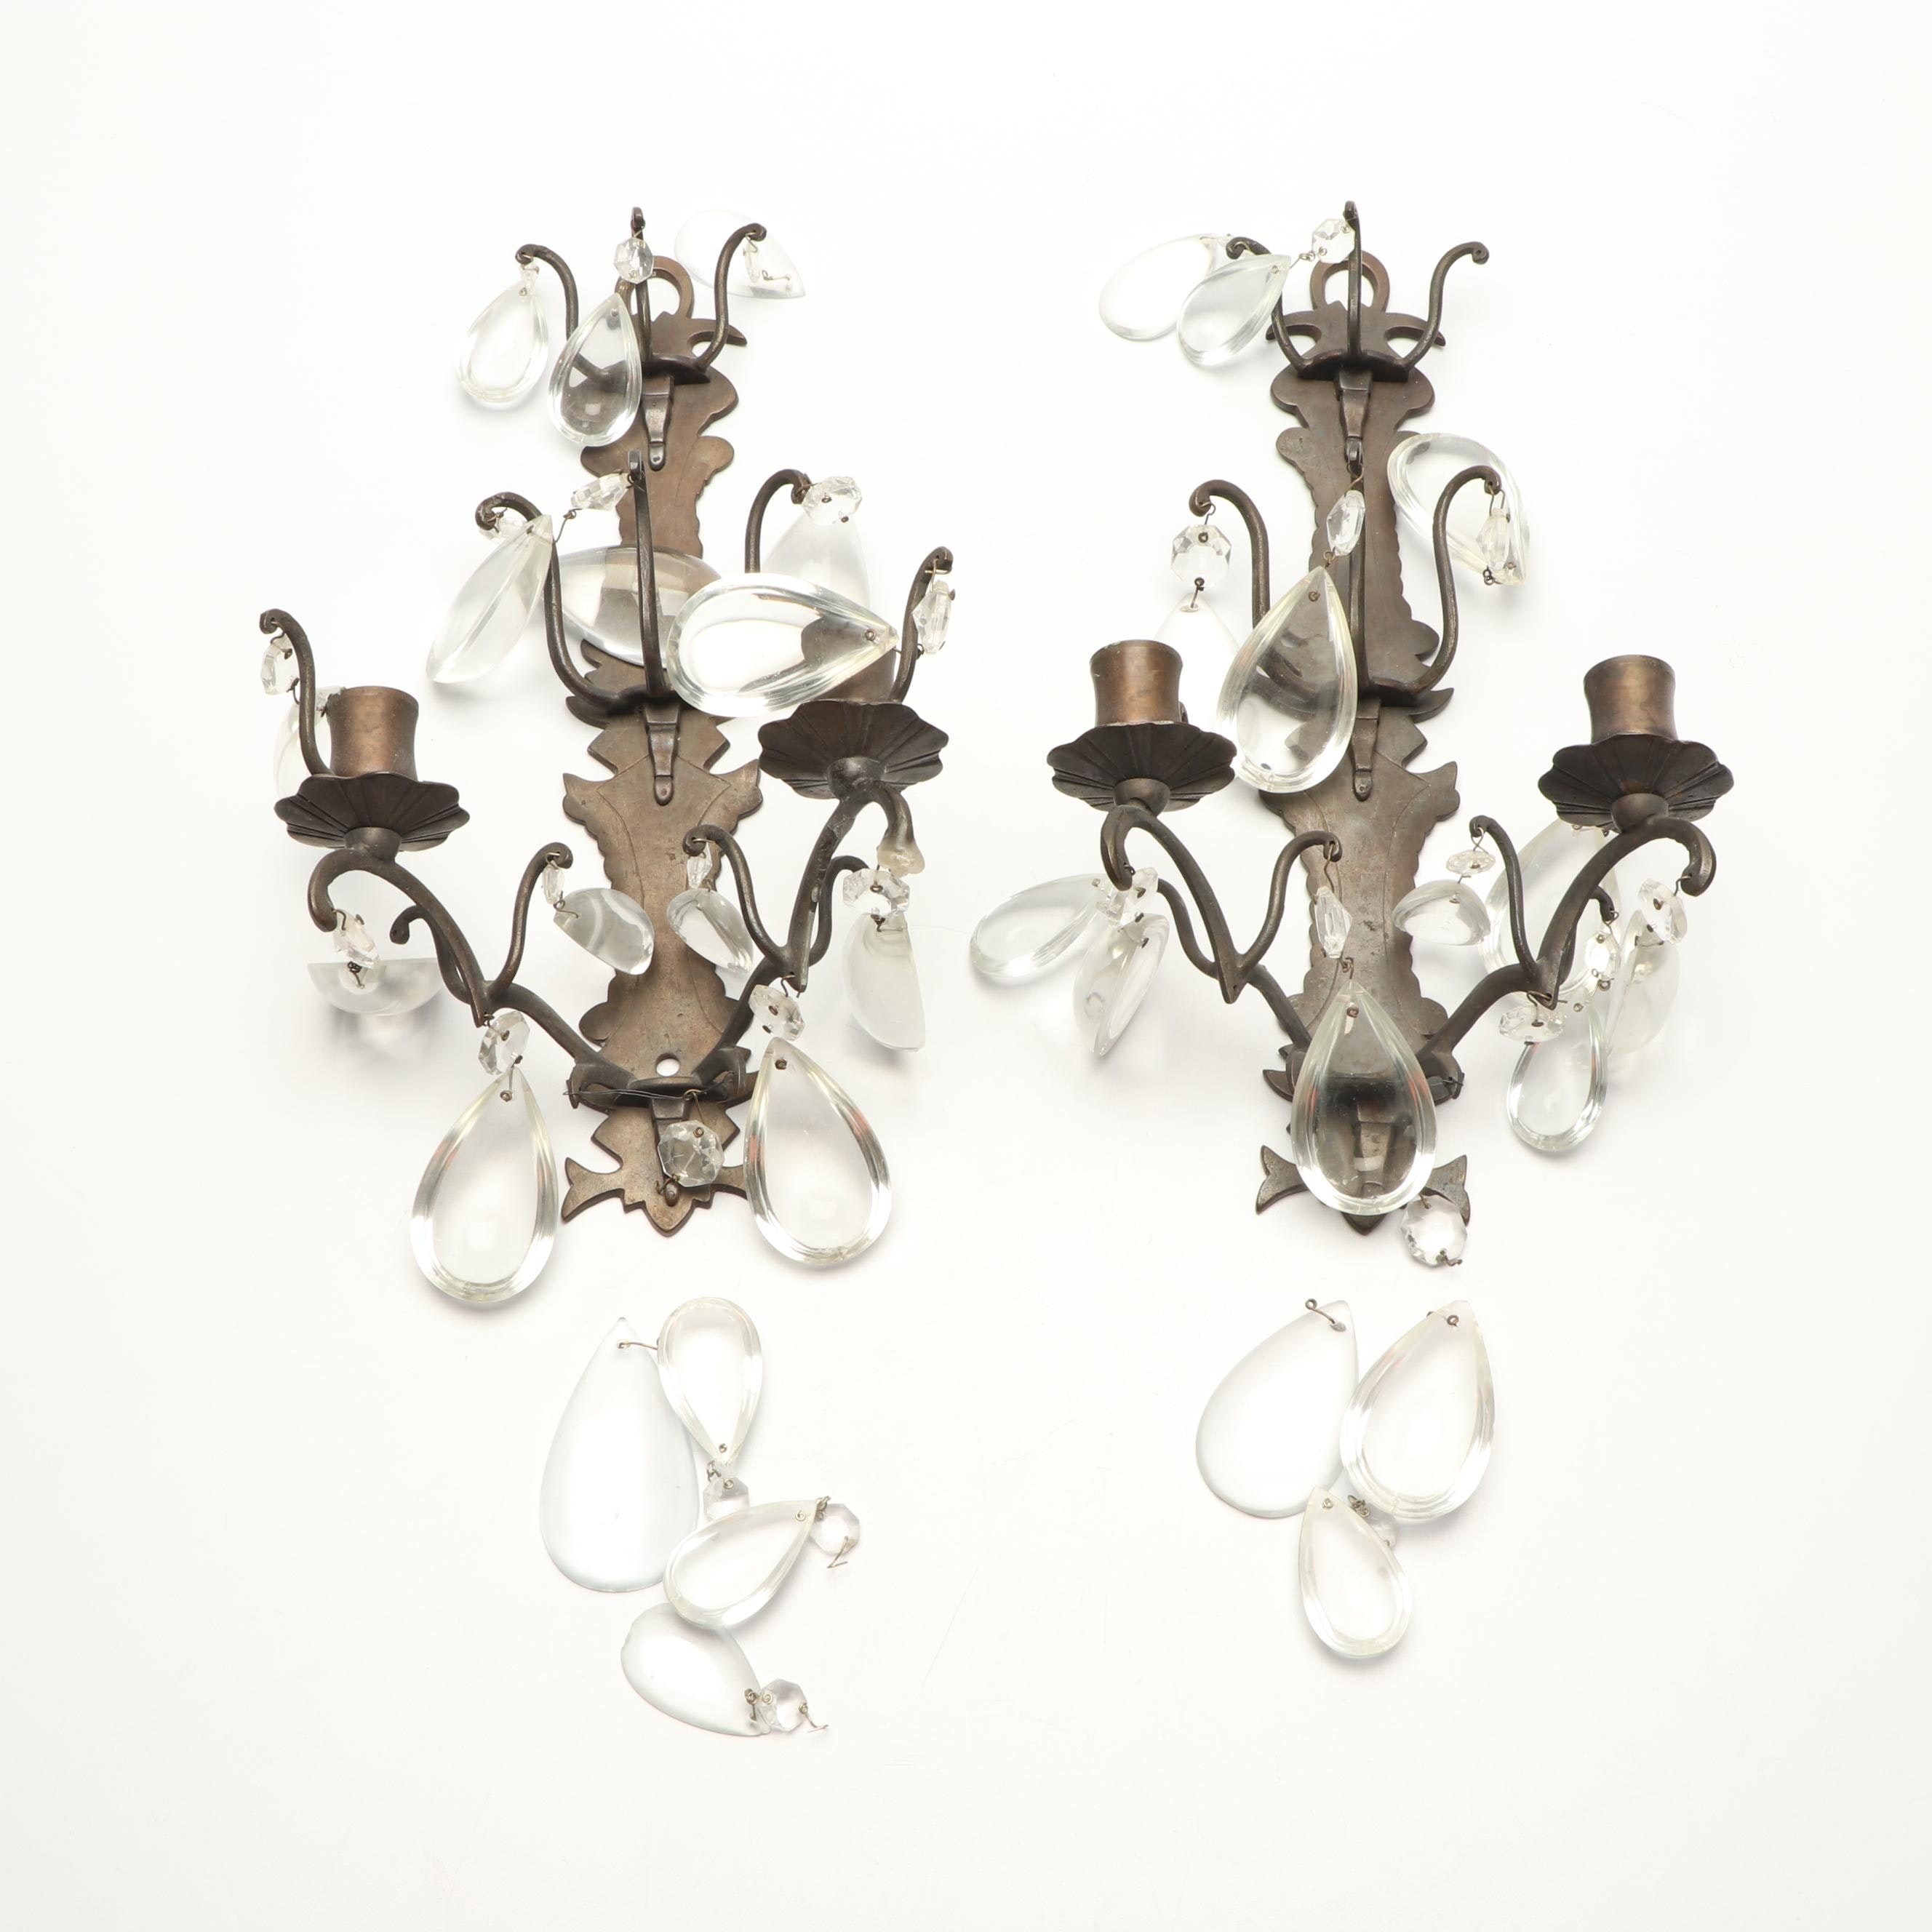 Candle Sconces with Glass Prisms